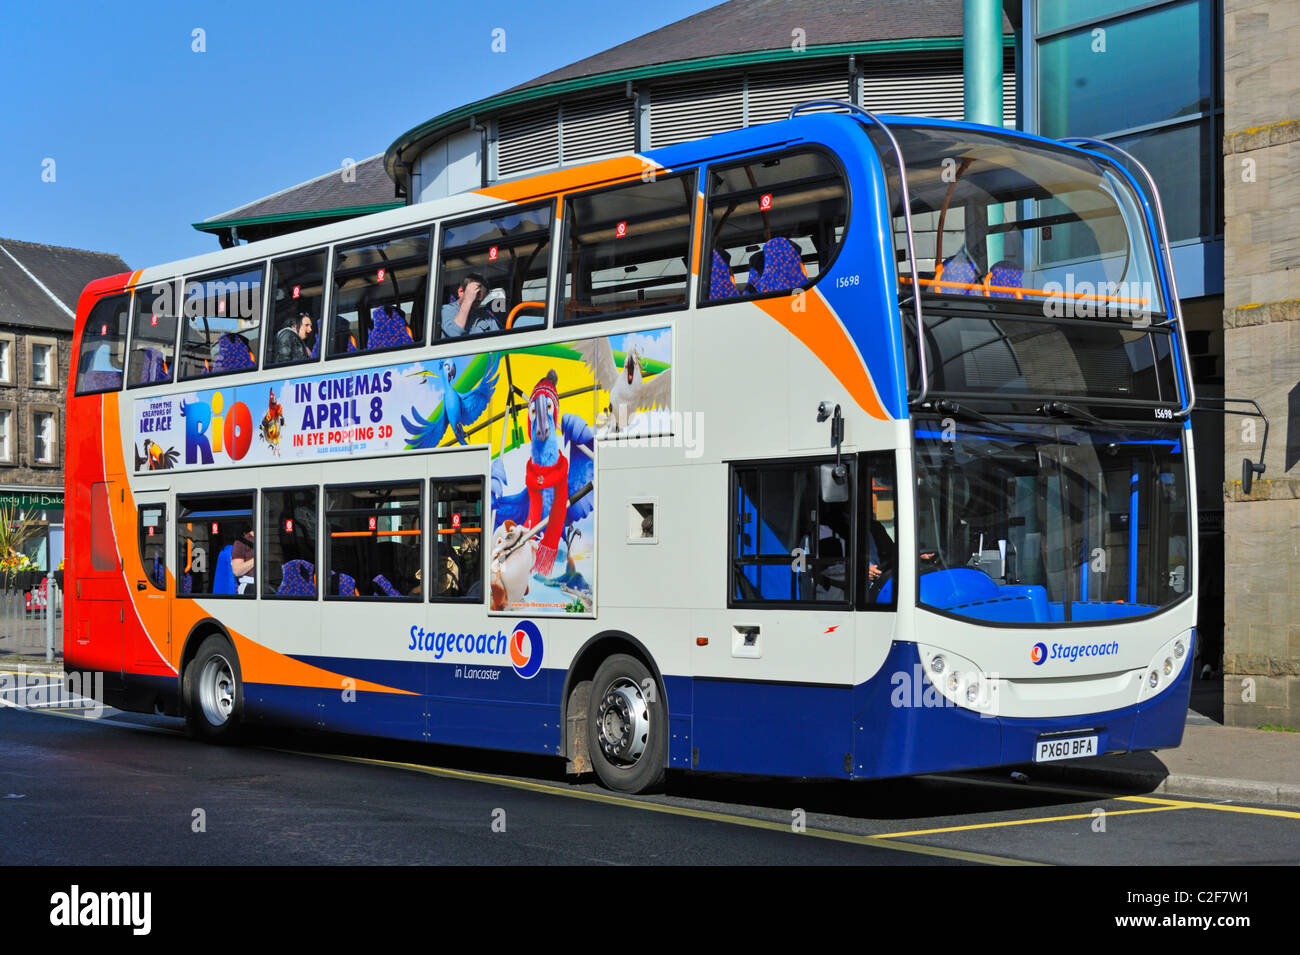 stagecoach-double-deck-bus-at-lancaster-market-common-garden-street-C2F7W1.jpg